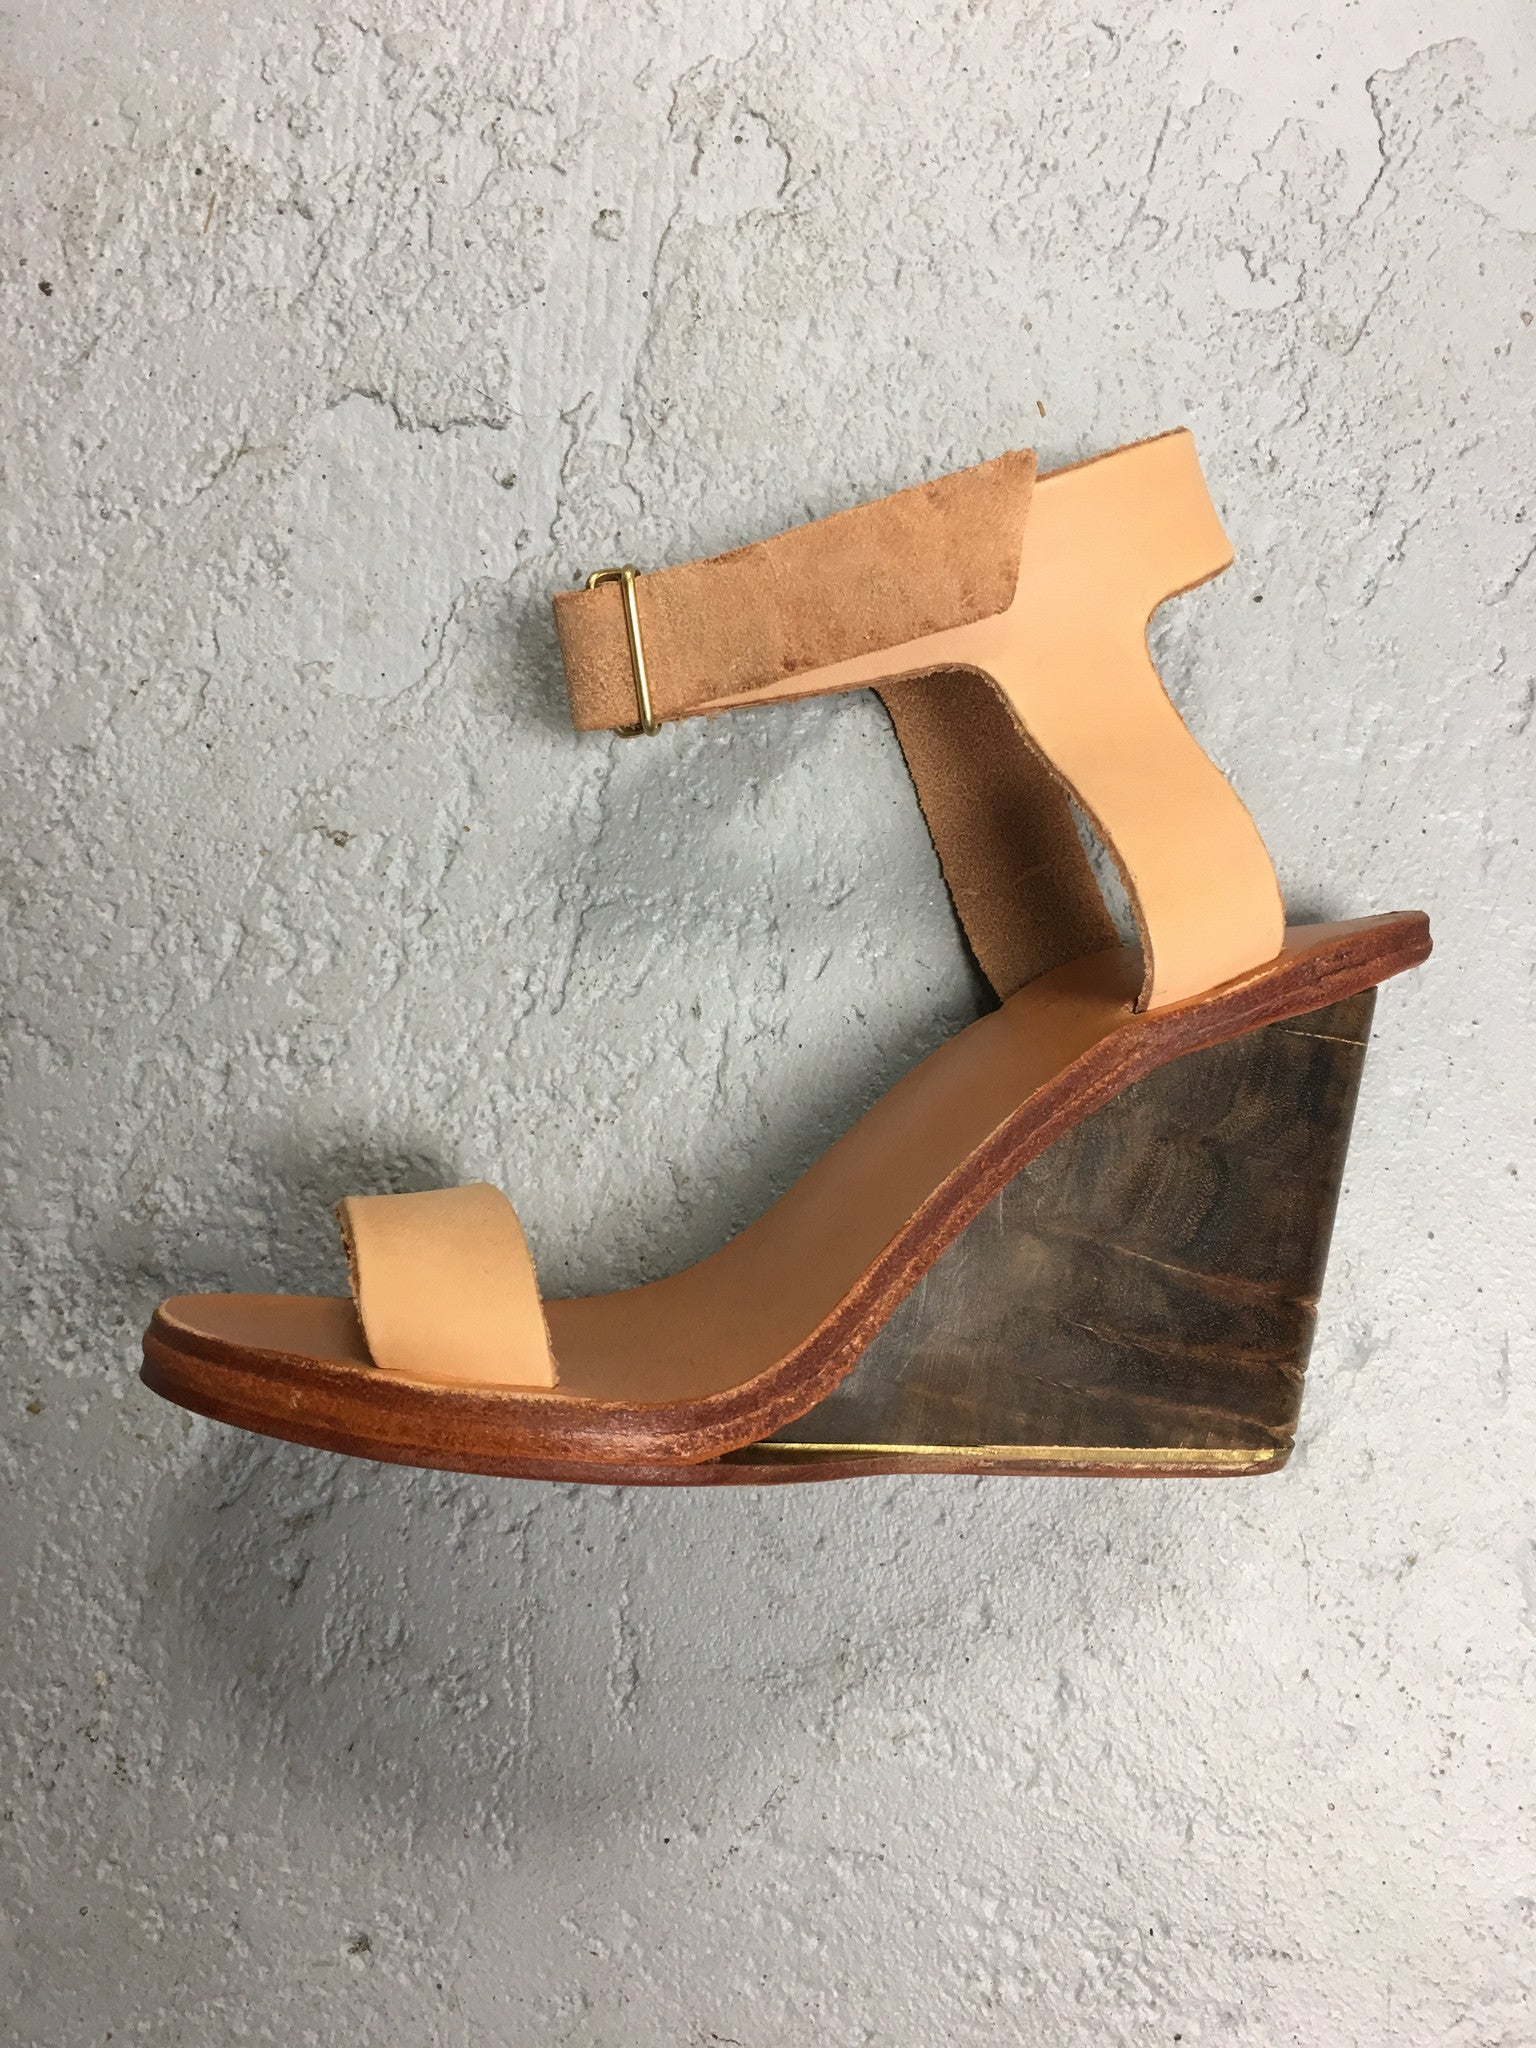 Wedge Heel Leather and Wood Handmade Shoes